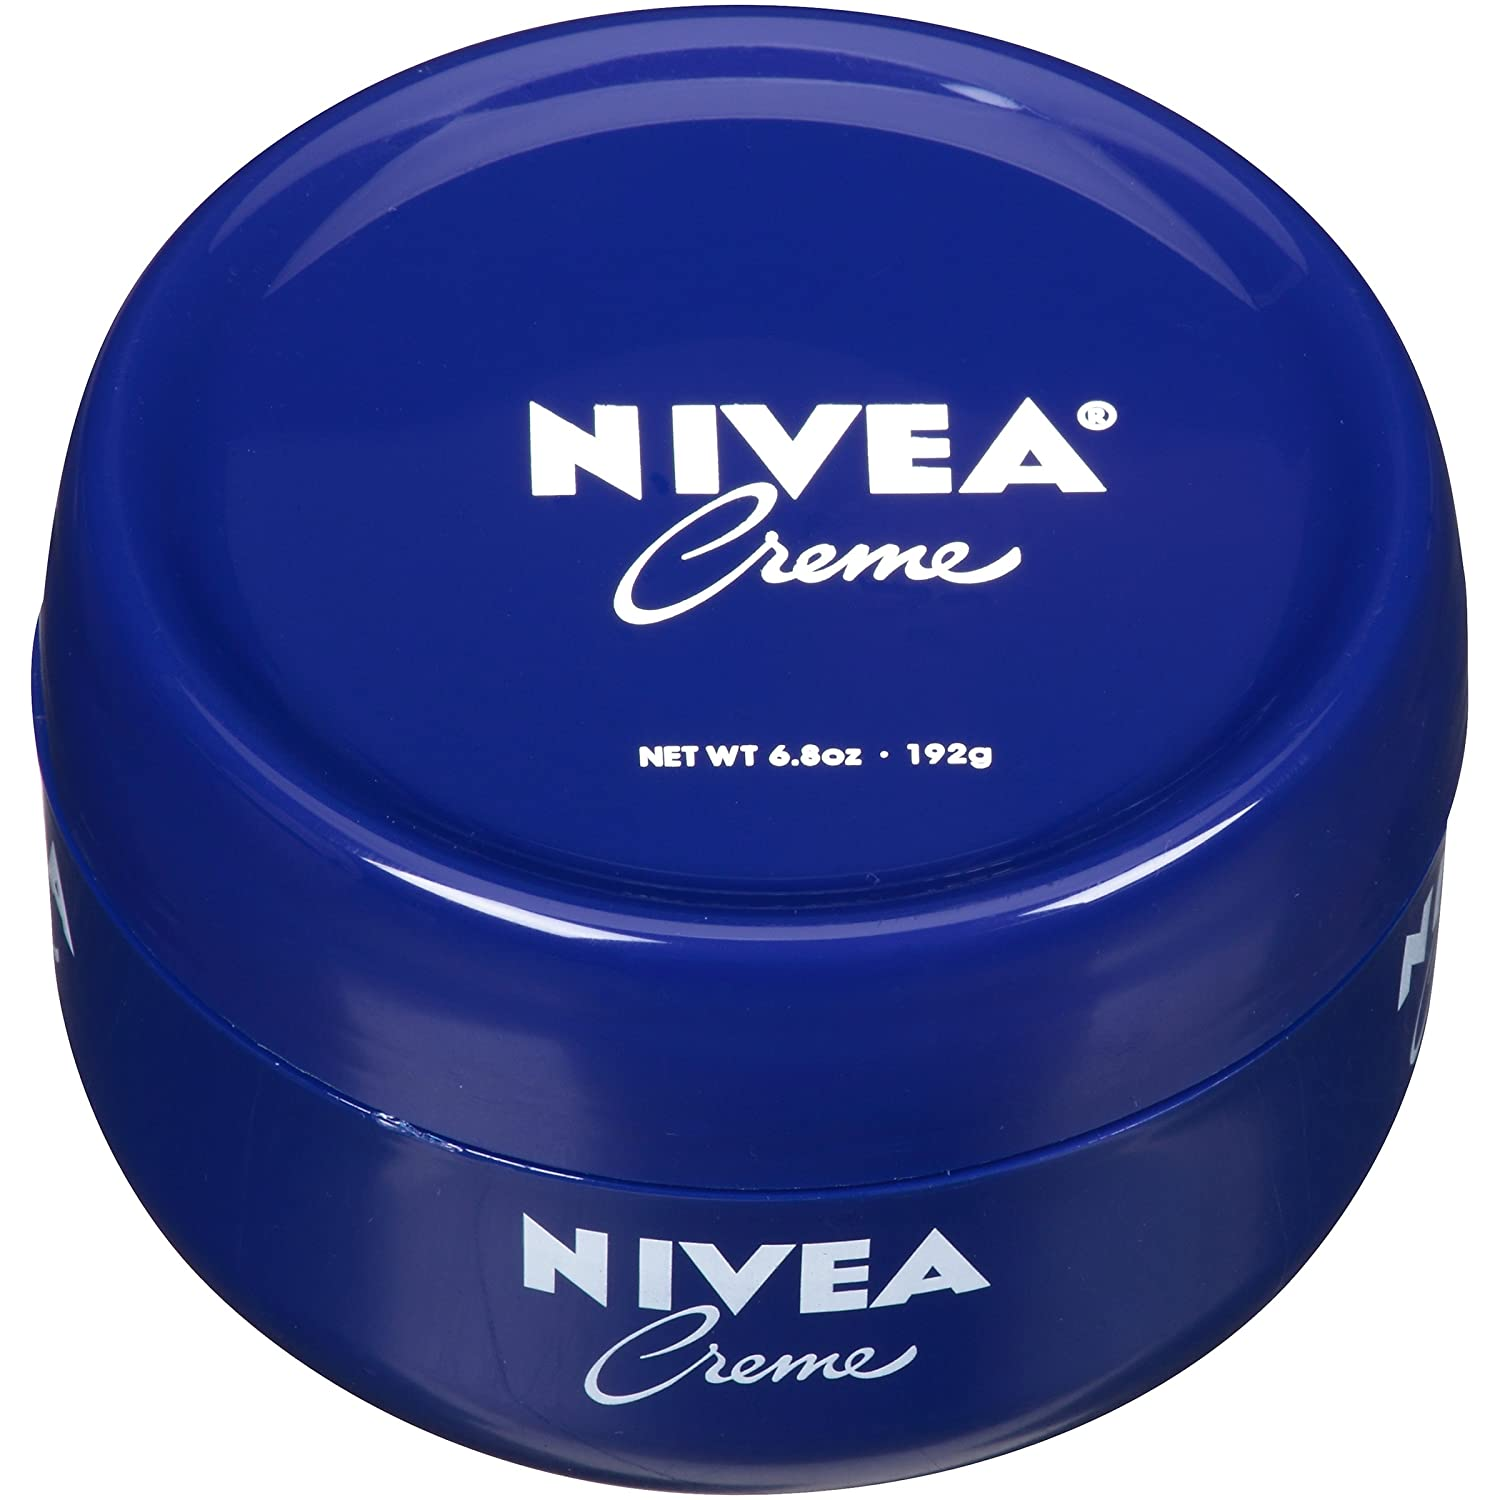 NIVEA Crème - Unisex All Purpose Moisturizing Cream for Body, Face & Hand Care - 6.8 oz. Jar (Pack of 3)